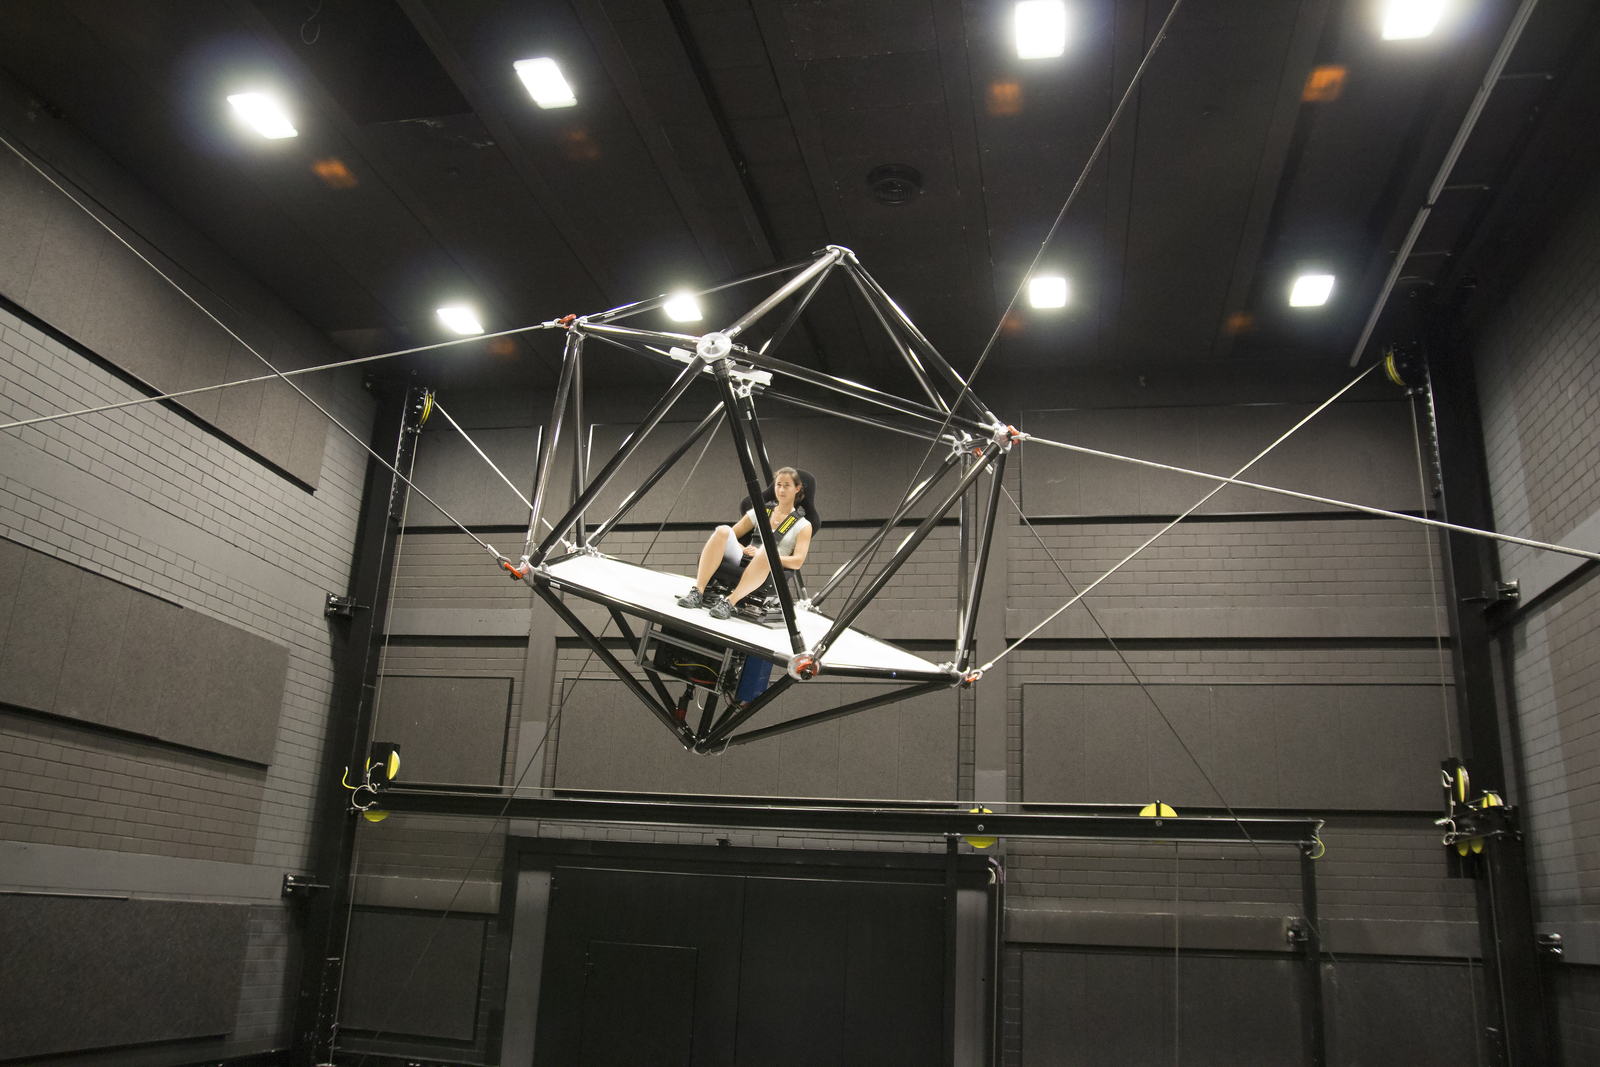 Ultimate VR simulator throws you around in mid air